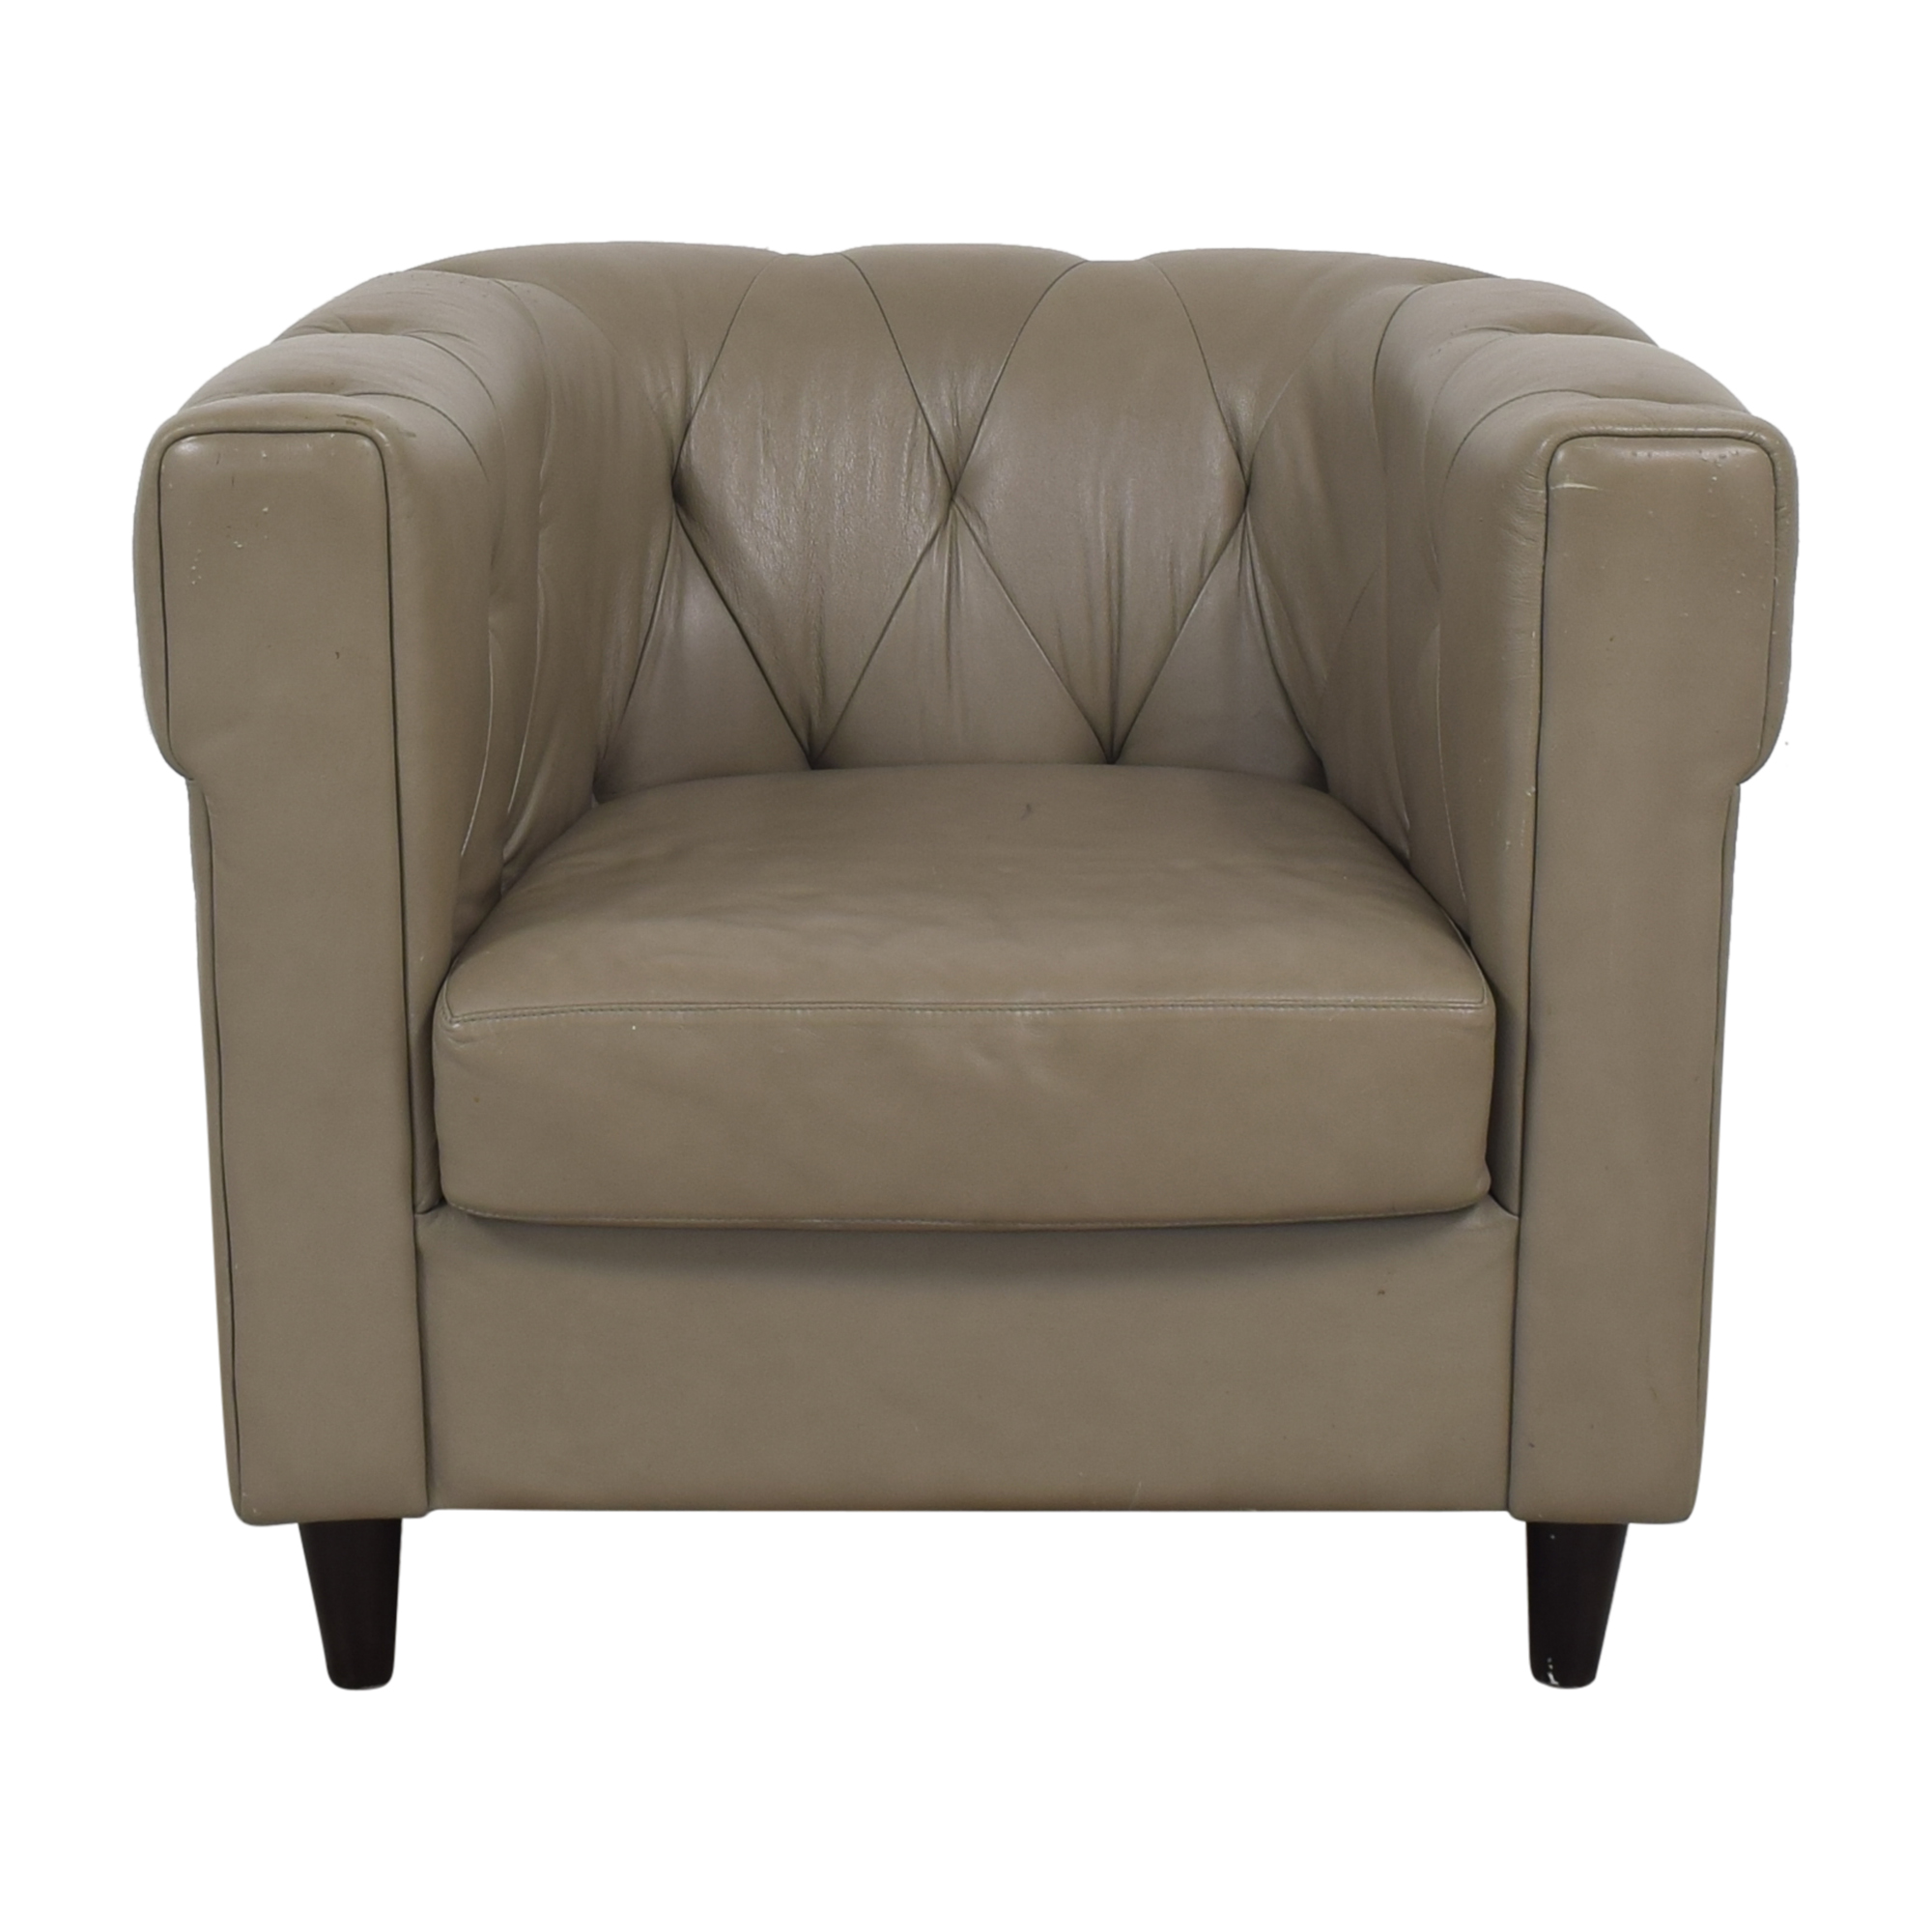 buy West Elm West Elm Club Chair online